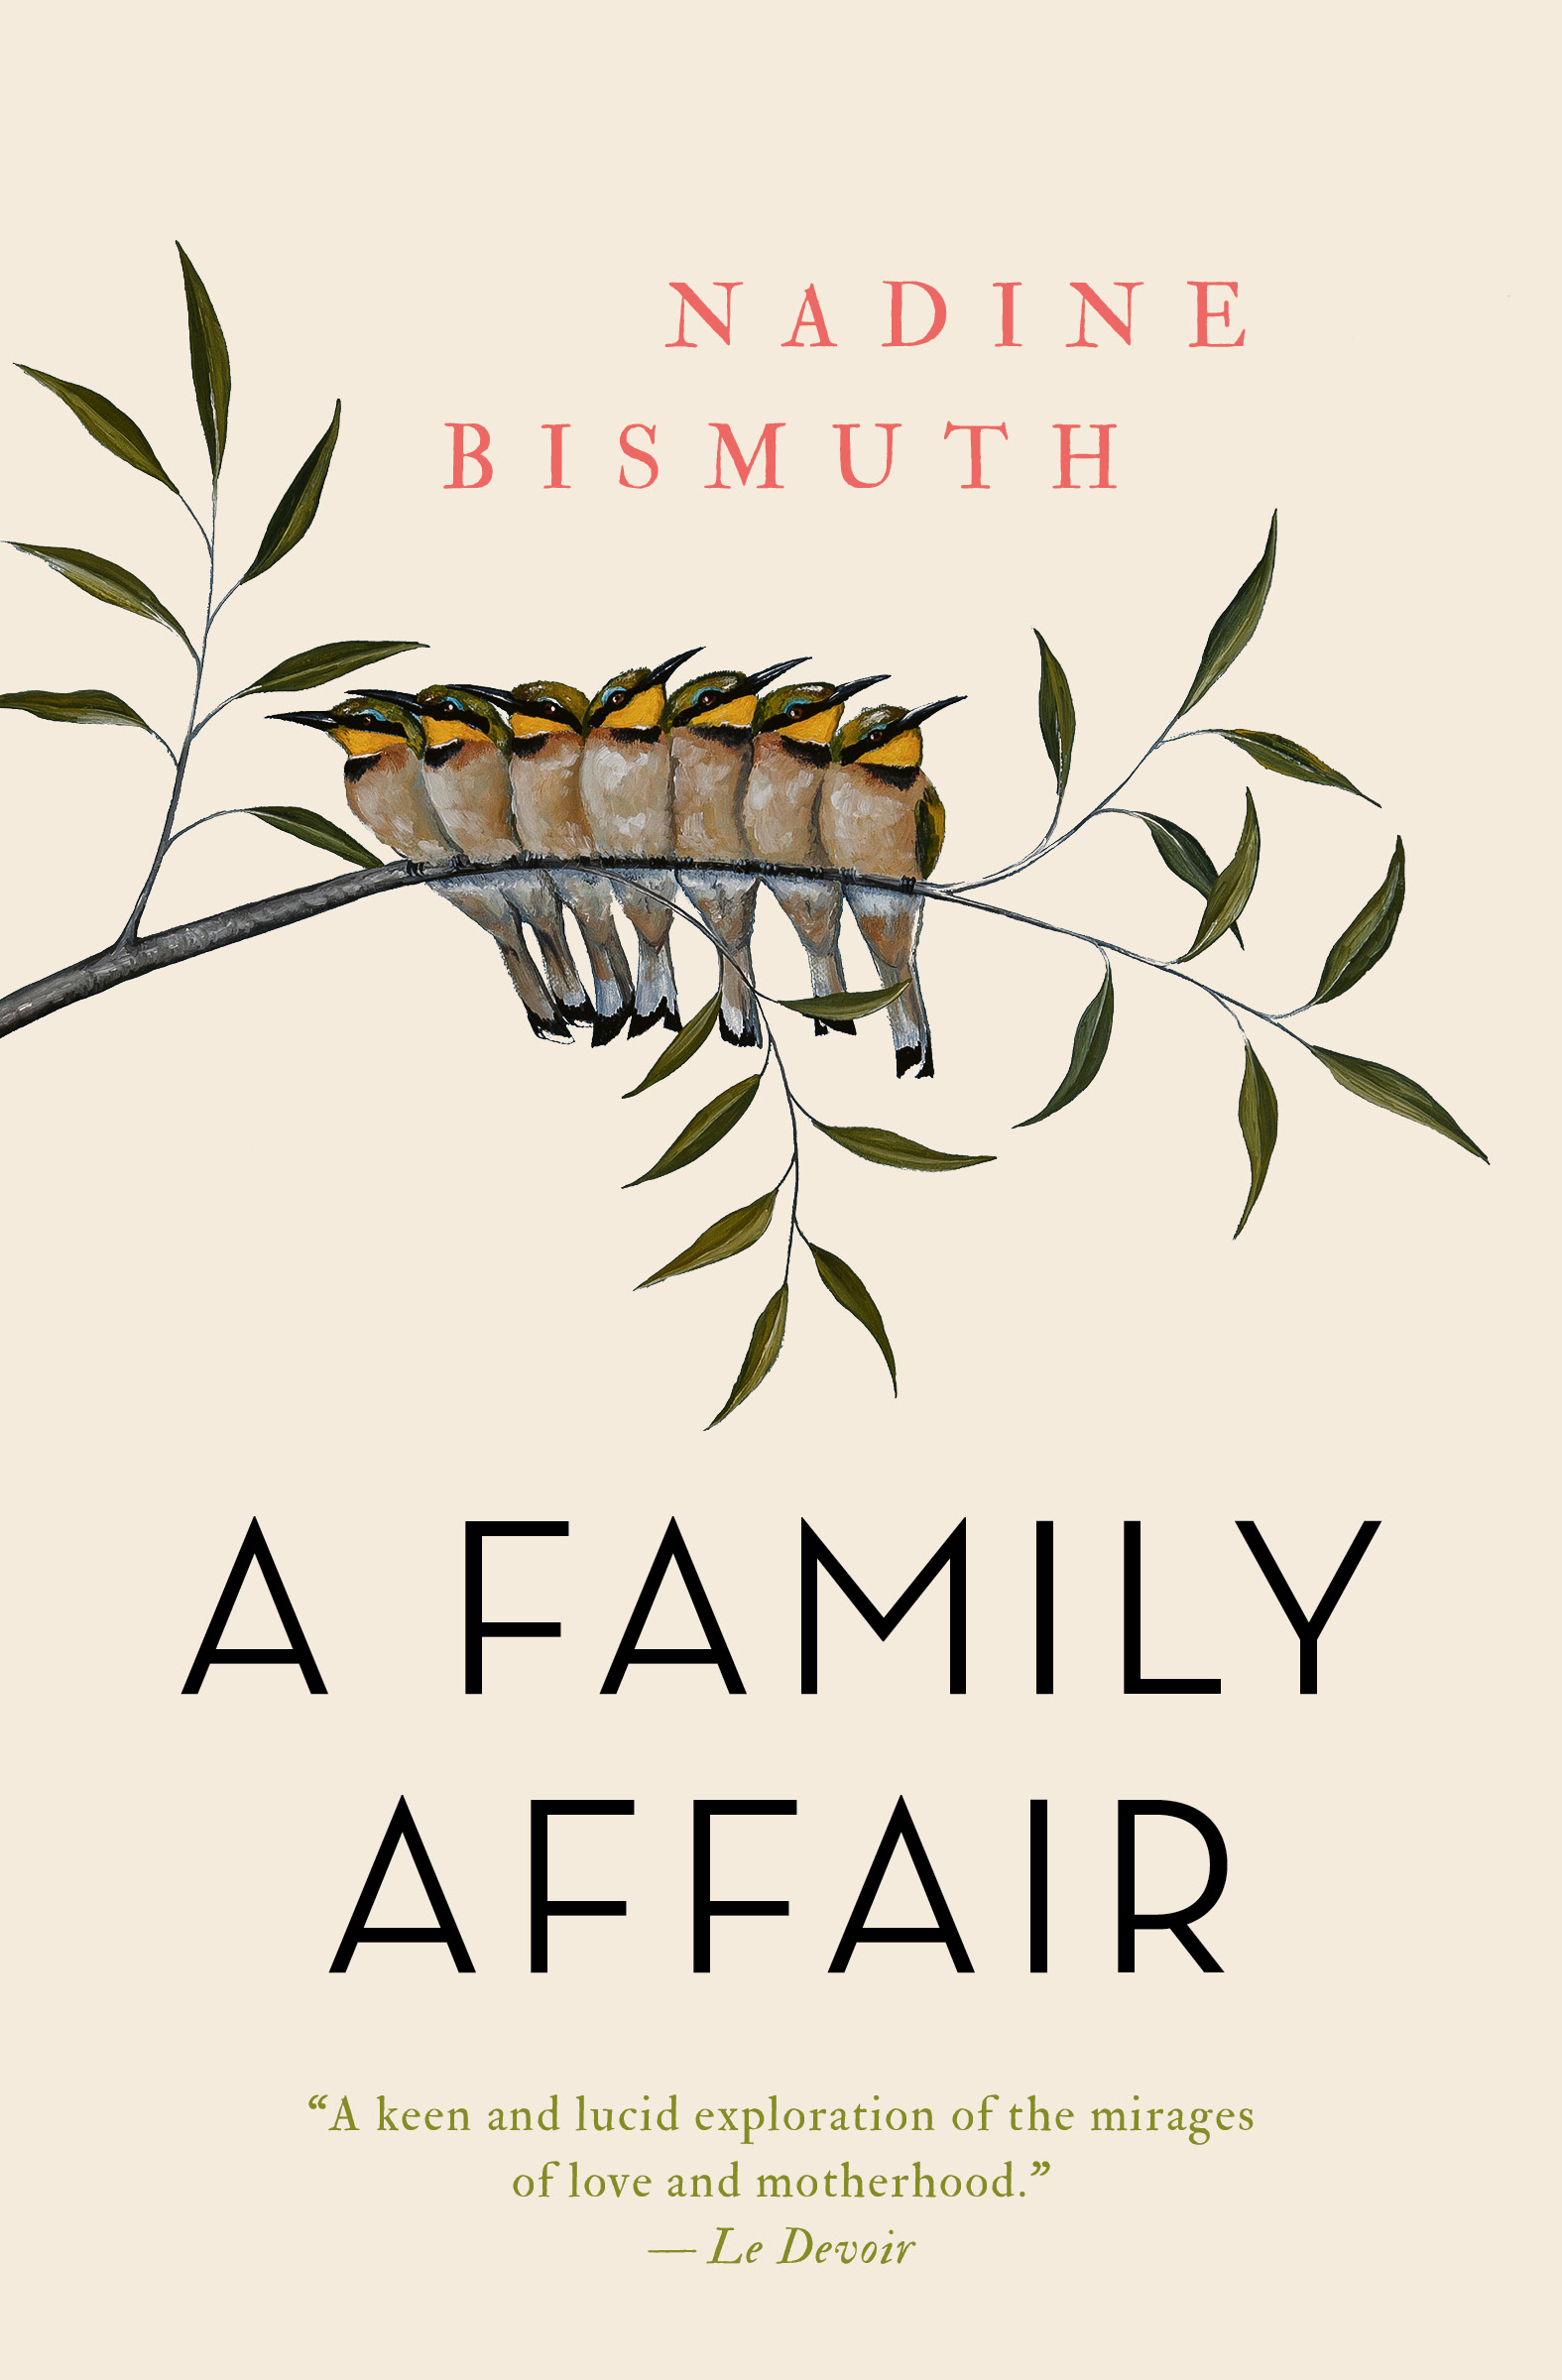 A Family Affair by Nadine Bismuth; Russell Smith, trans.